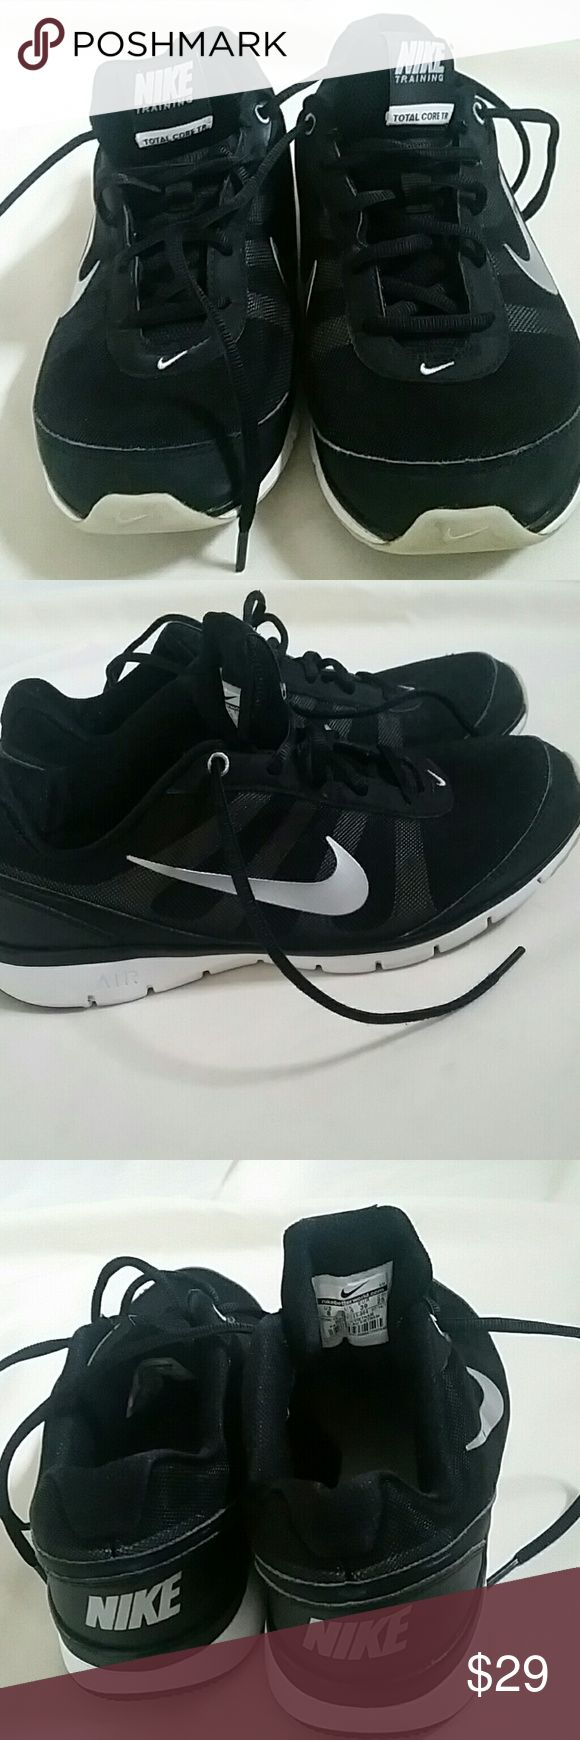 Nike training total core TR great exercise shoes 8 Very good condition in a well made nike training shoes Nike Shoes Athletic Shoes